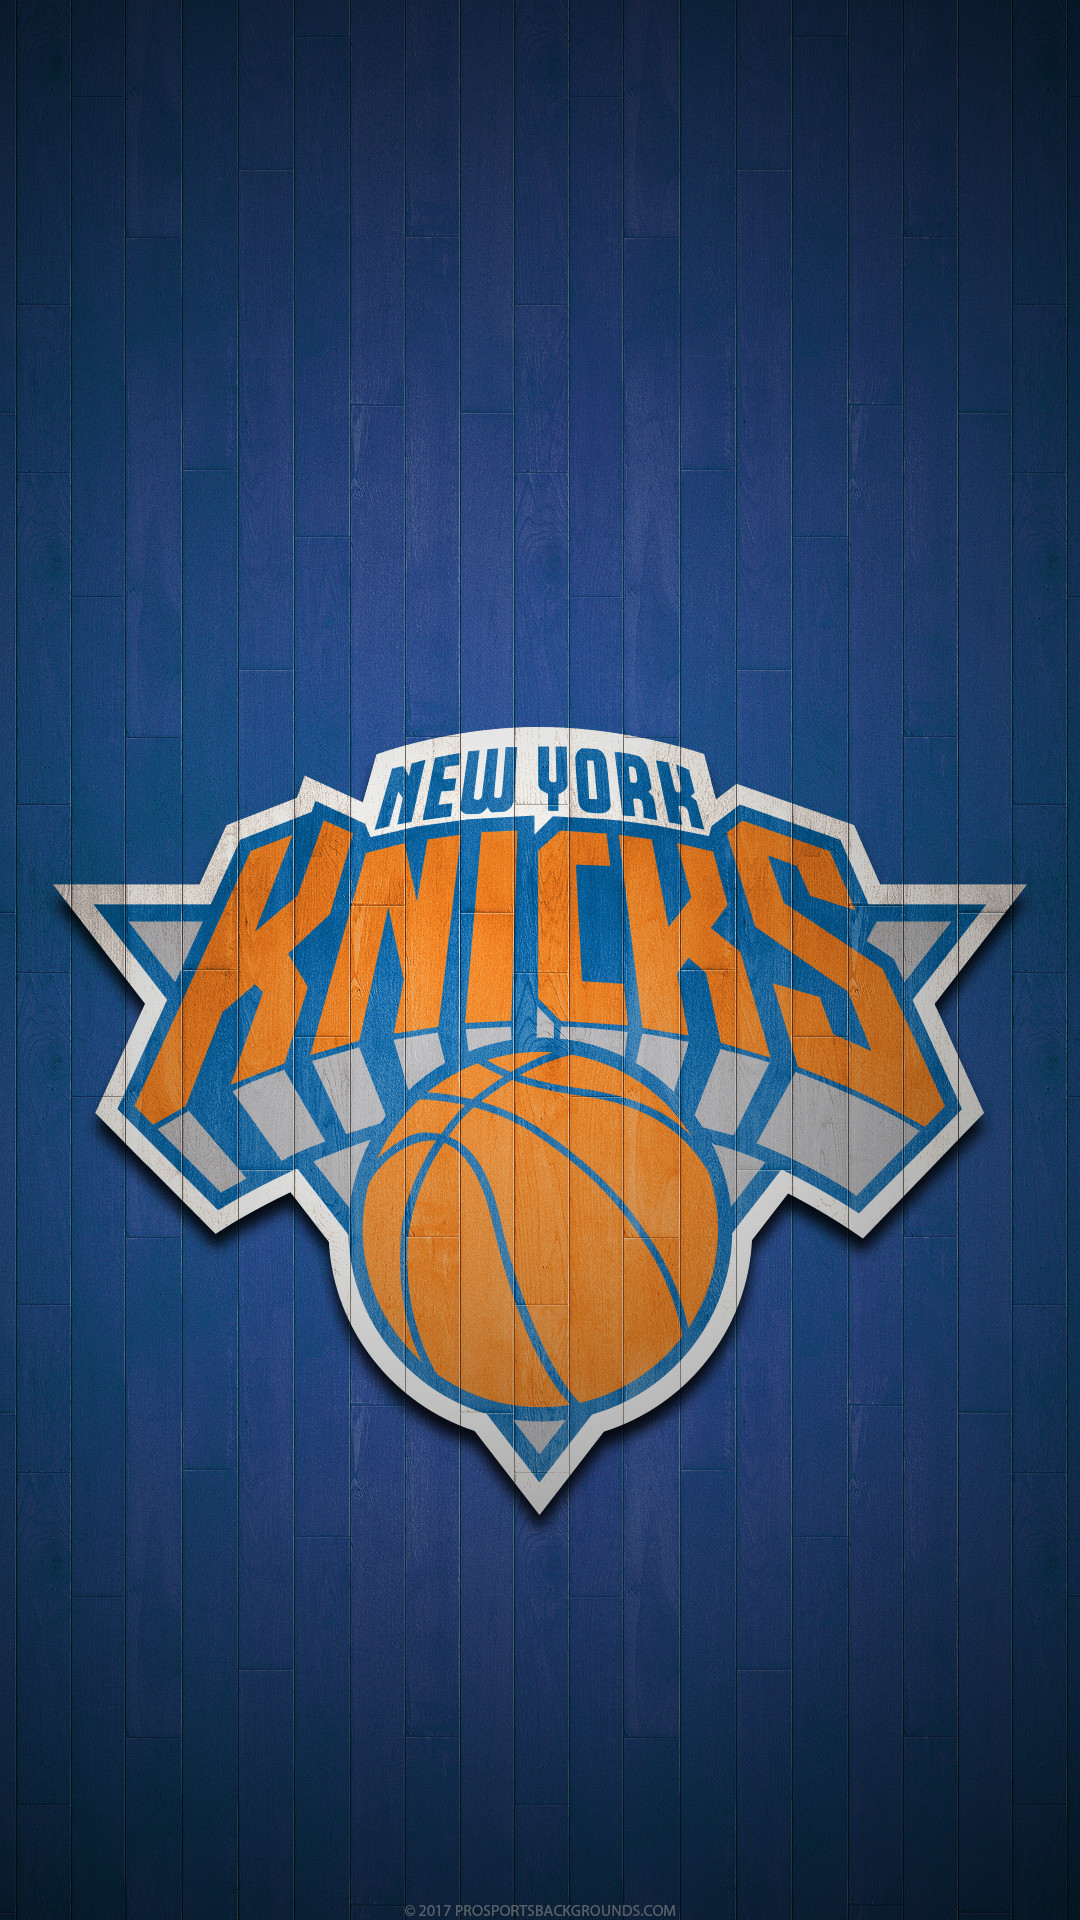 1080x1920 - New York Knicks Wallpapers 5